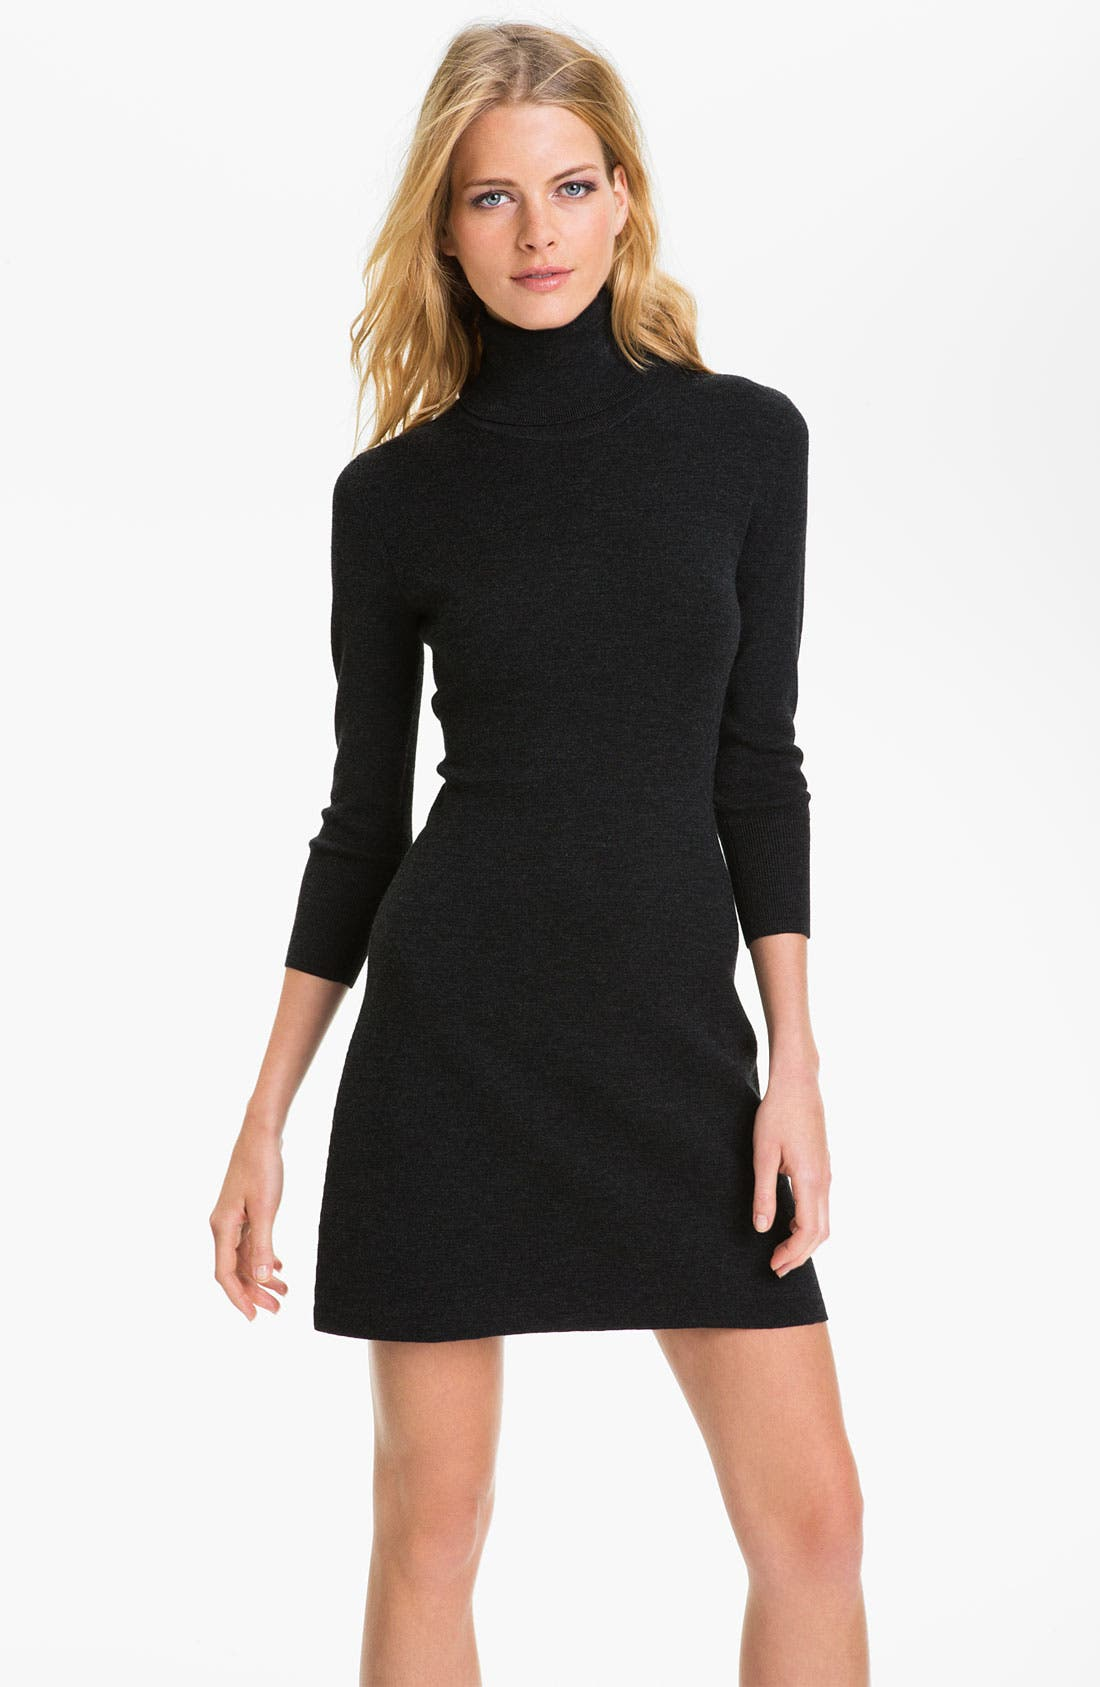 Alternate Image 1 Selected - Theory 'Vemara' Shift Sweater Dress (Online Exclusive)